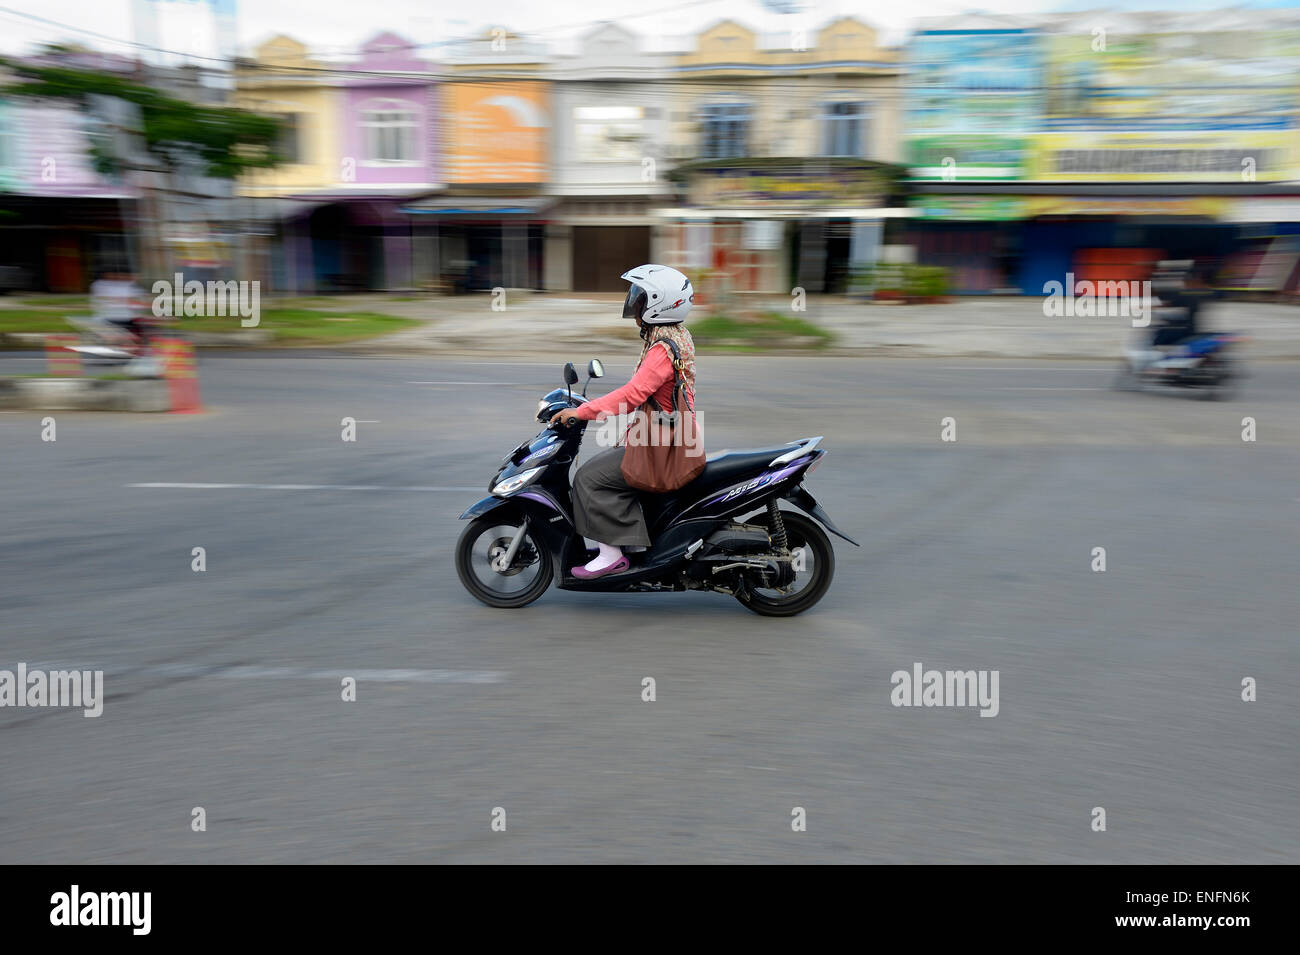 Woman on moped, Banda Aceh, Indonesia Stock Photo